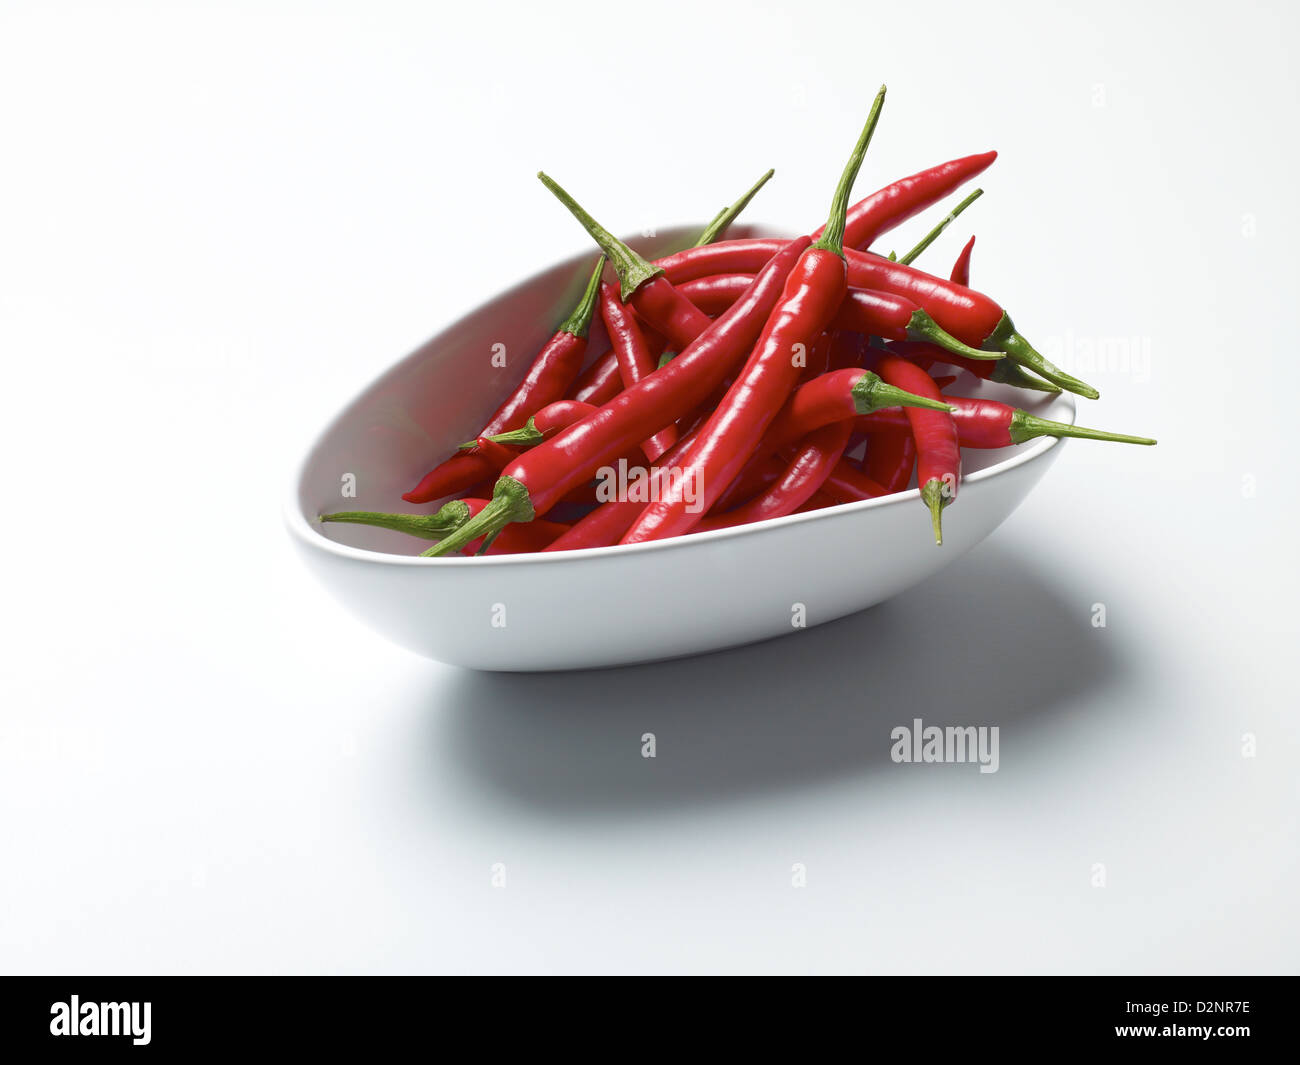 Bowl of red chillies - Stock Image